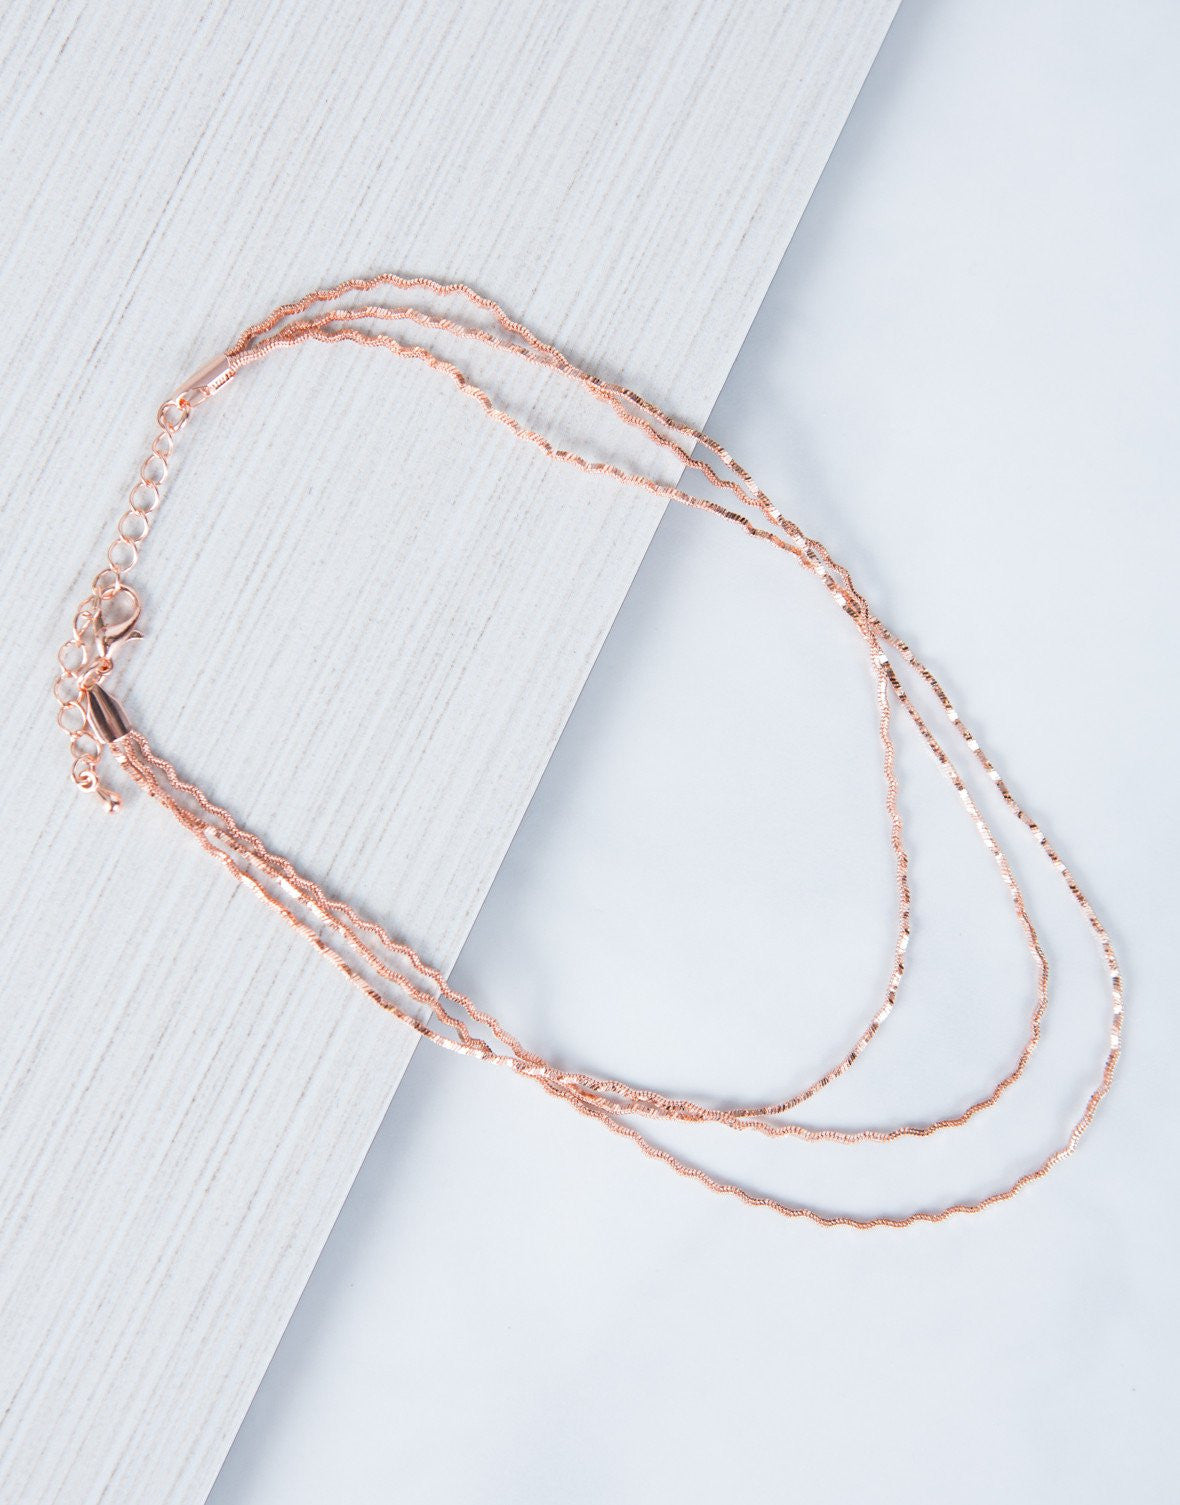 Rose Gold Sparkly Waves Choker - Front Detail